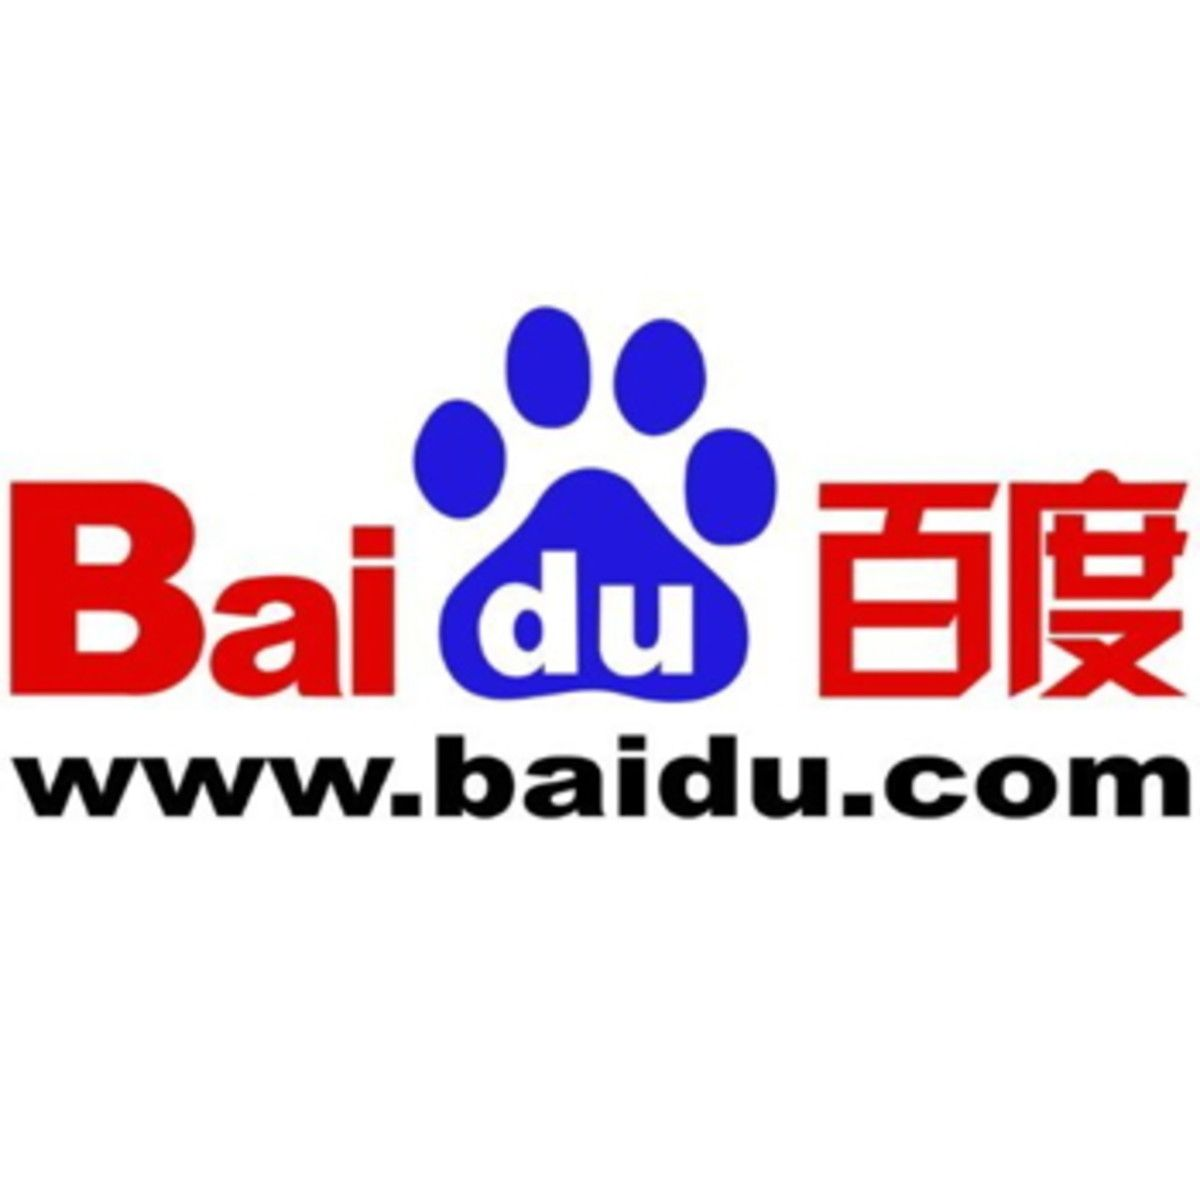 Baidu Logo - China's largest search engine Baidu launches English dev site - PC ...